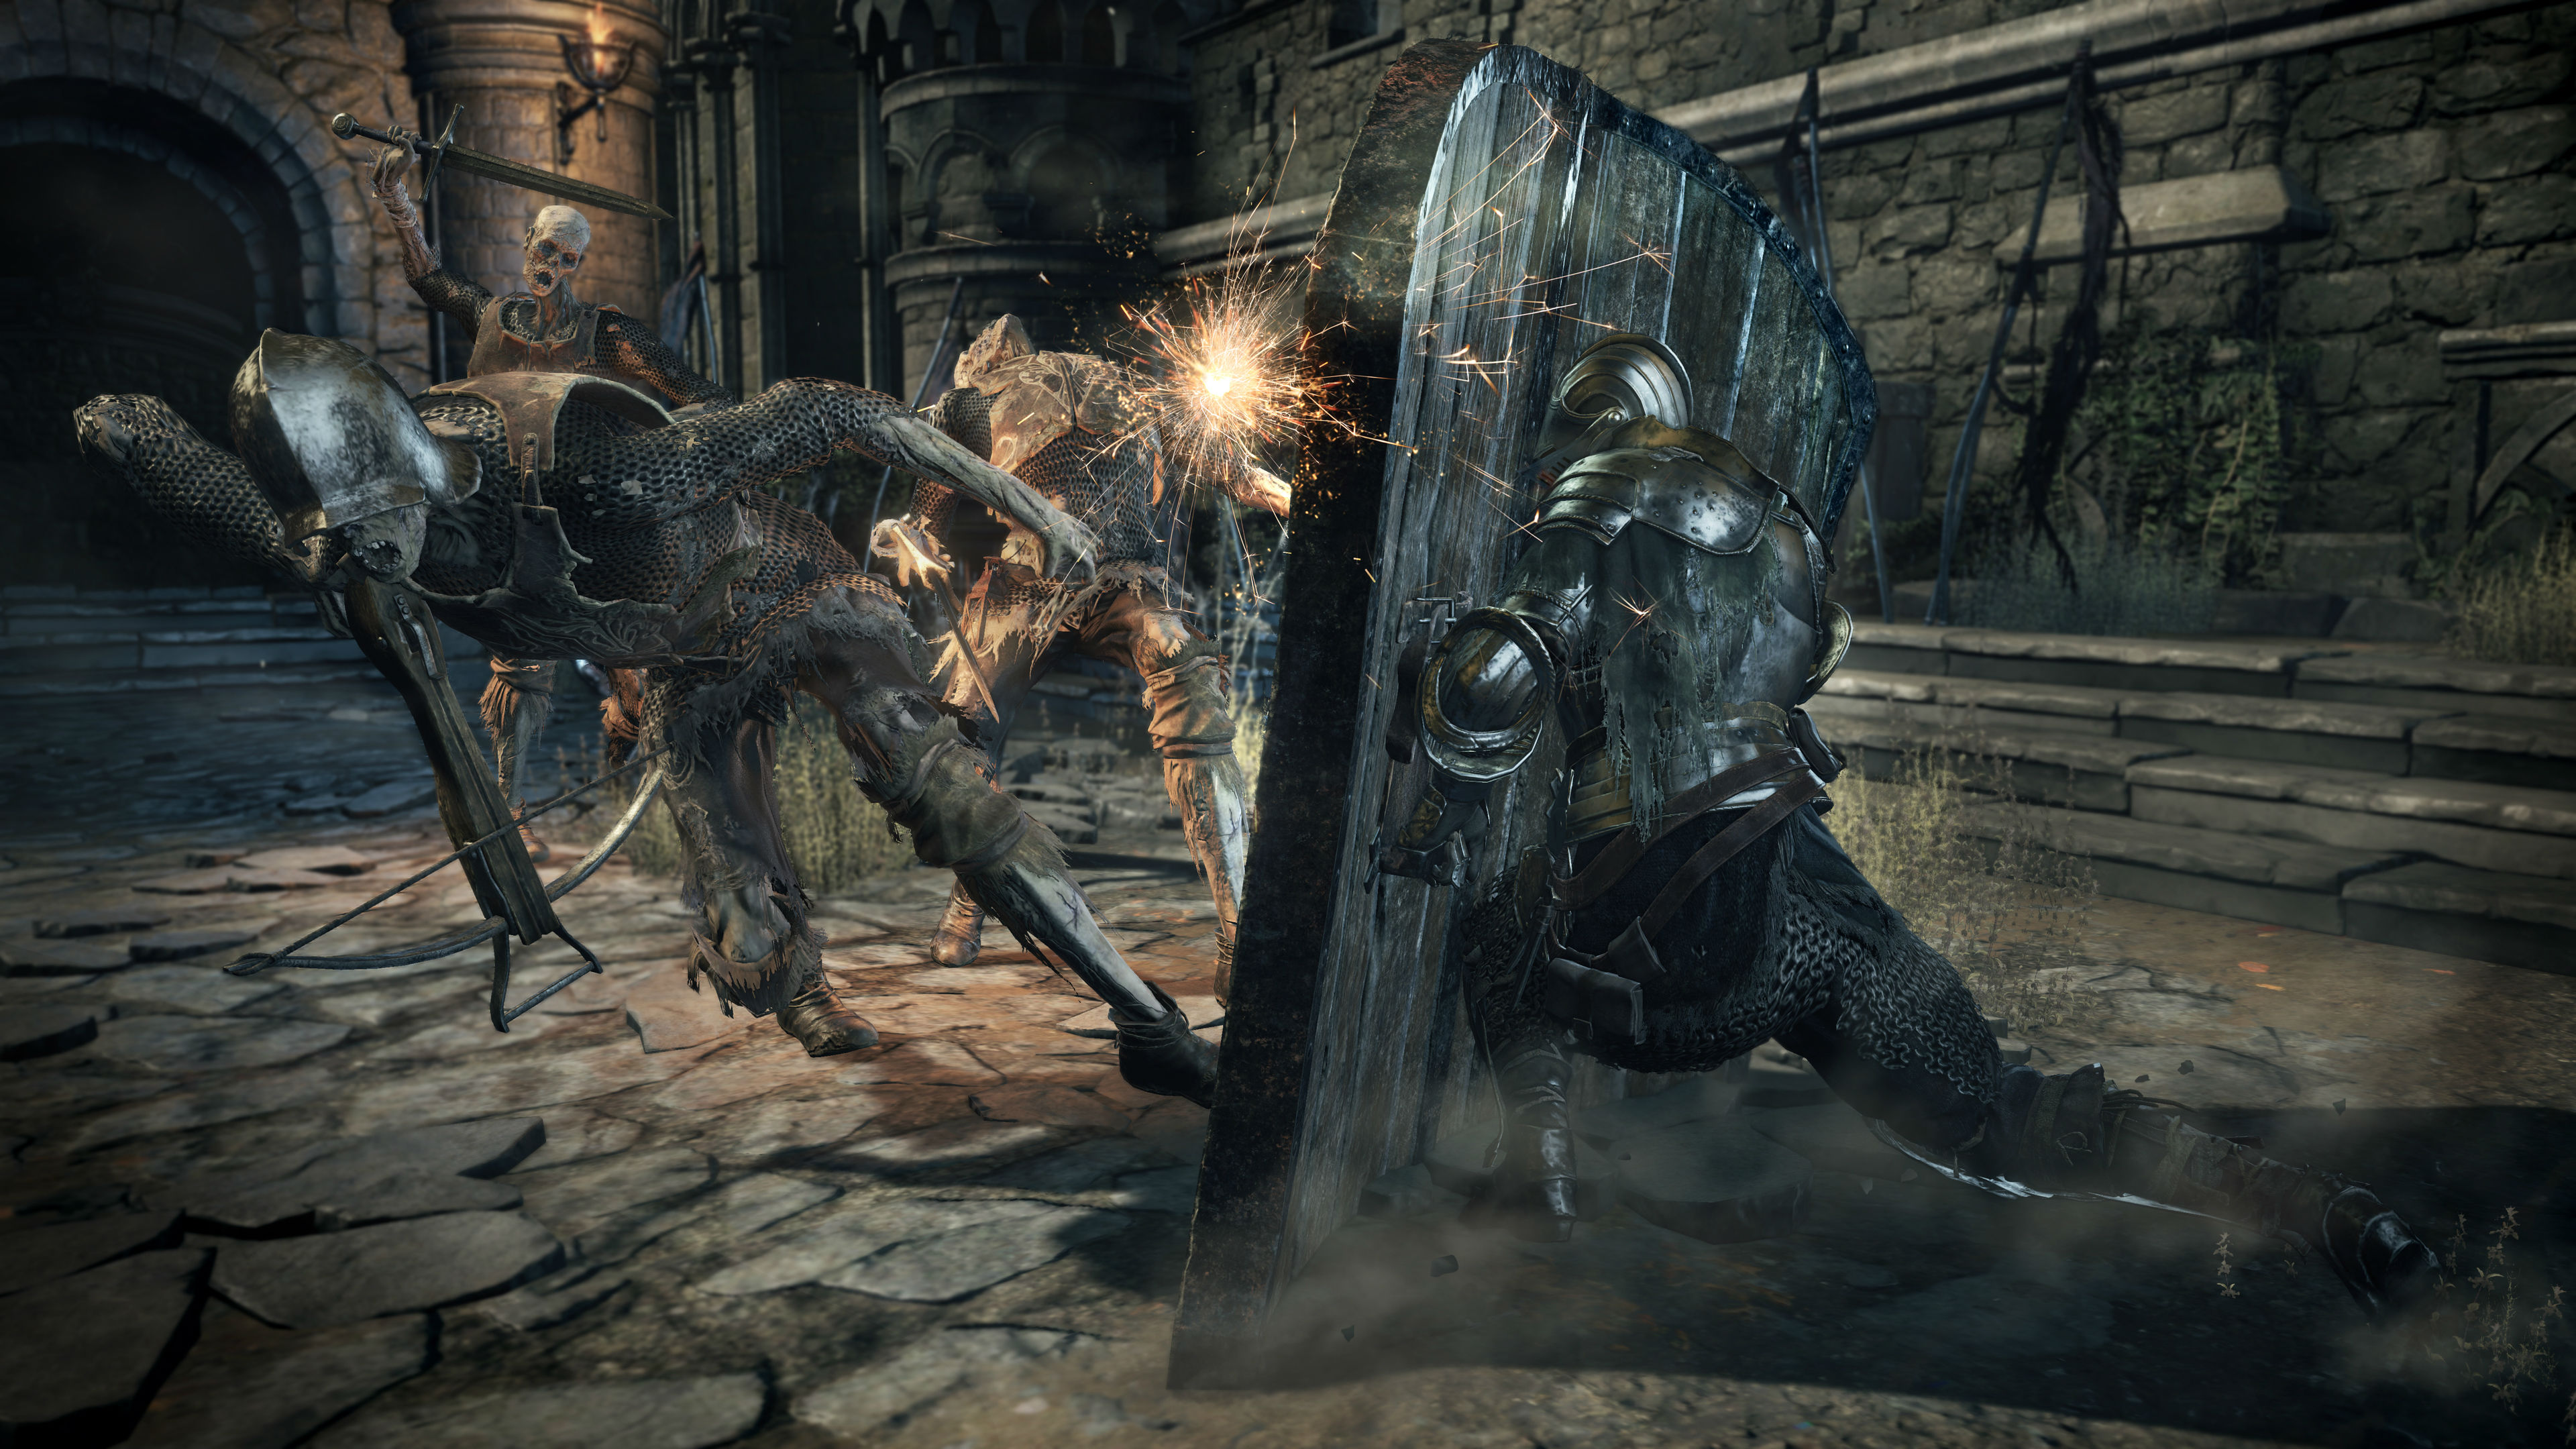 Dark Souls III: The Ringed City review